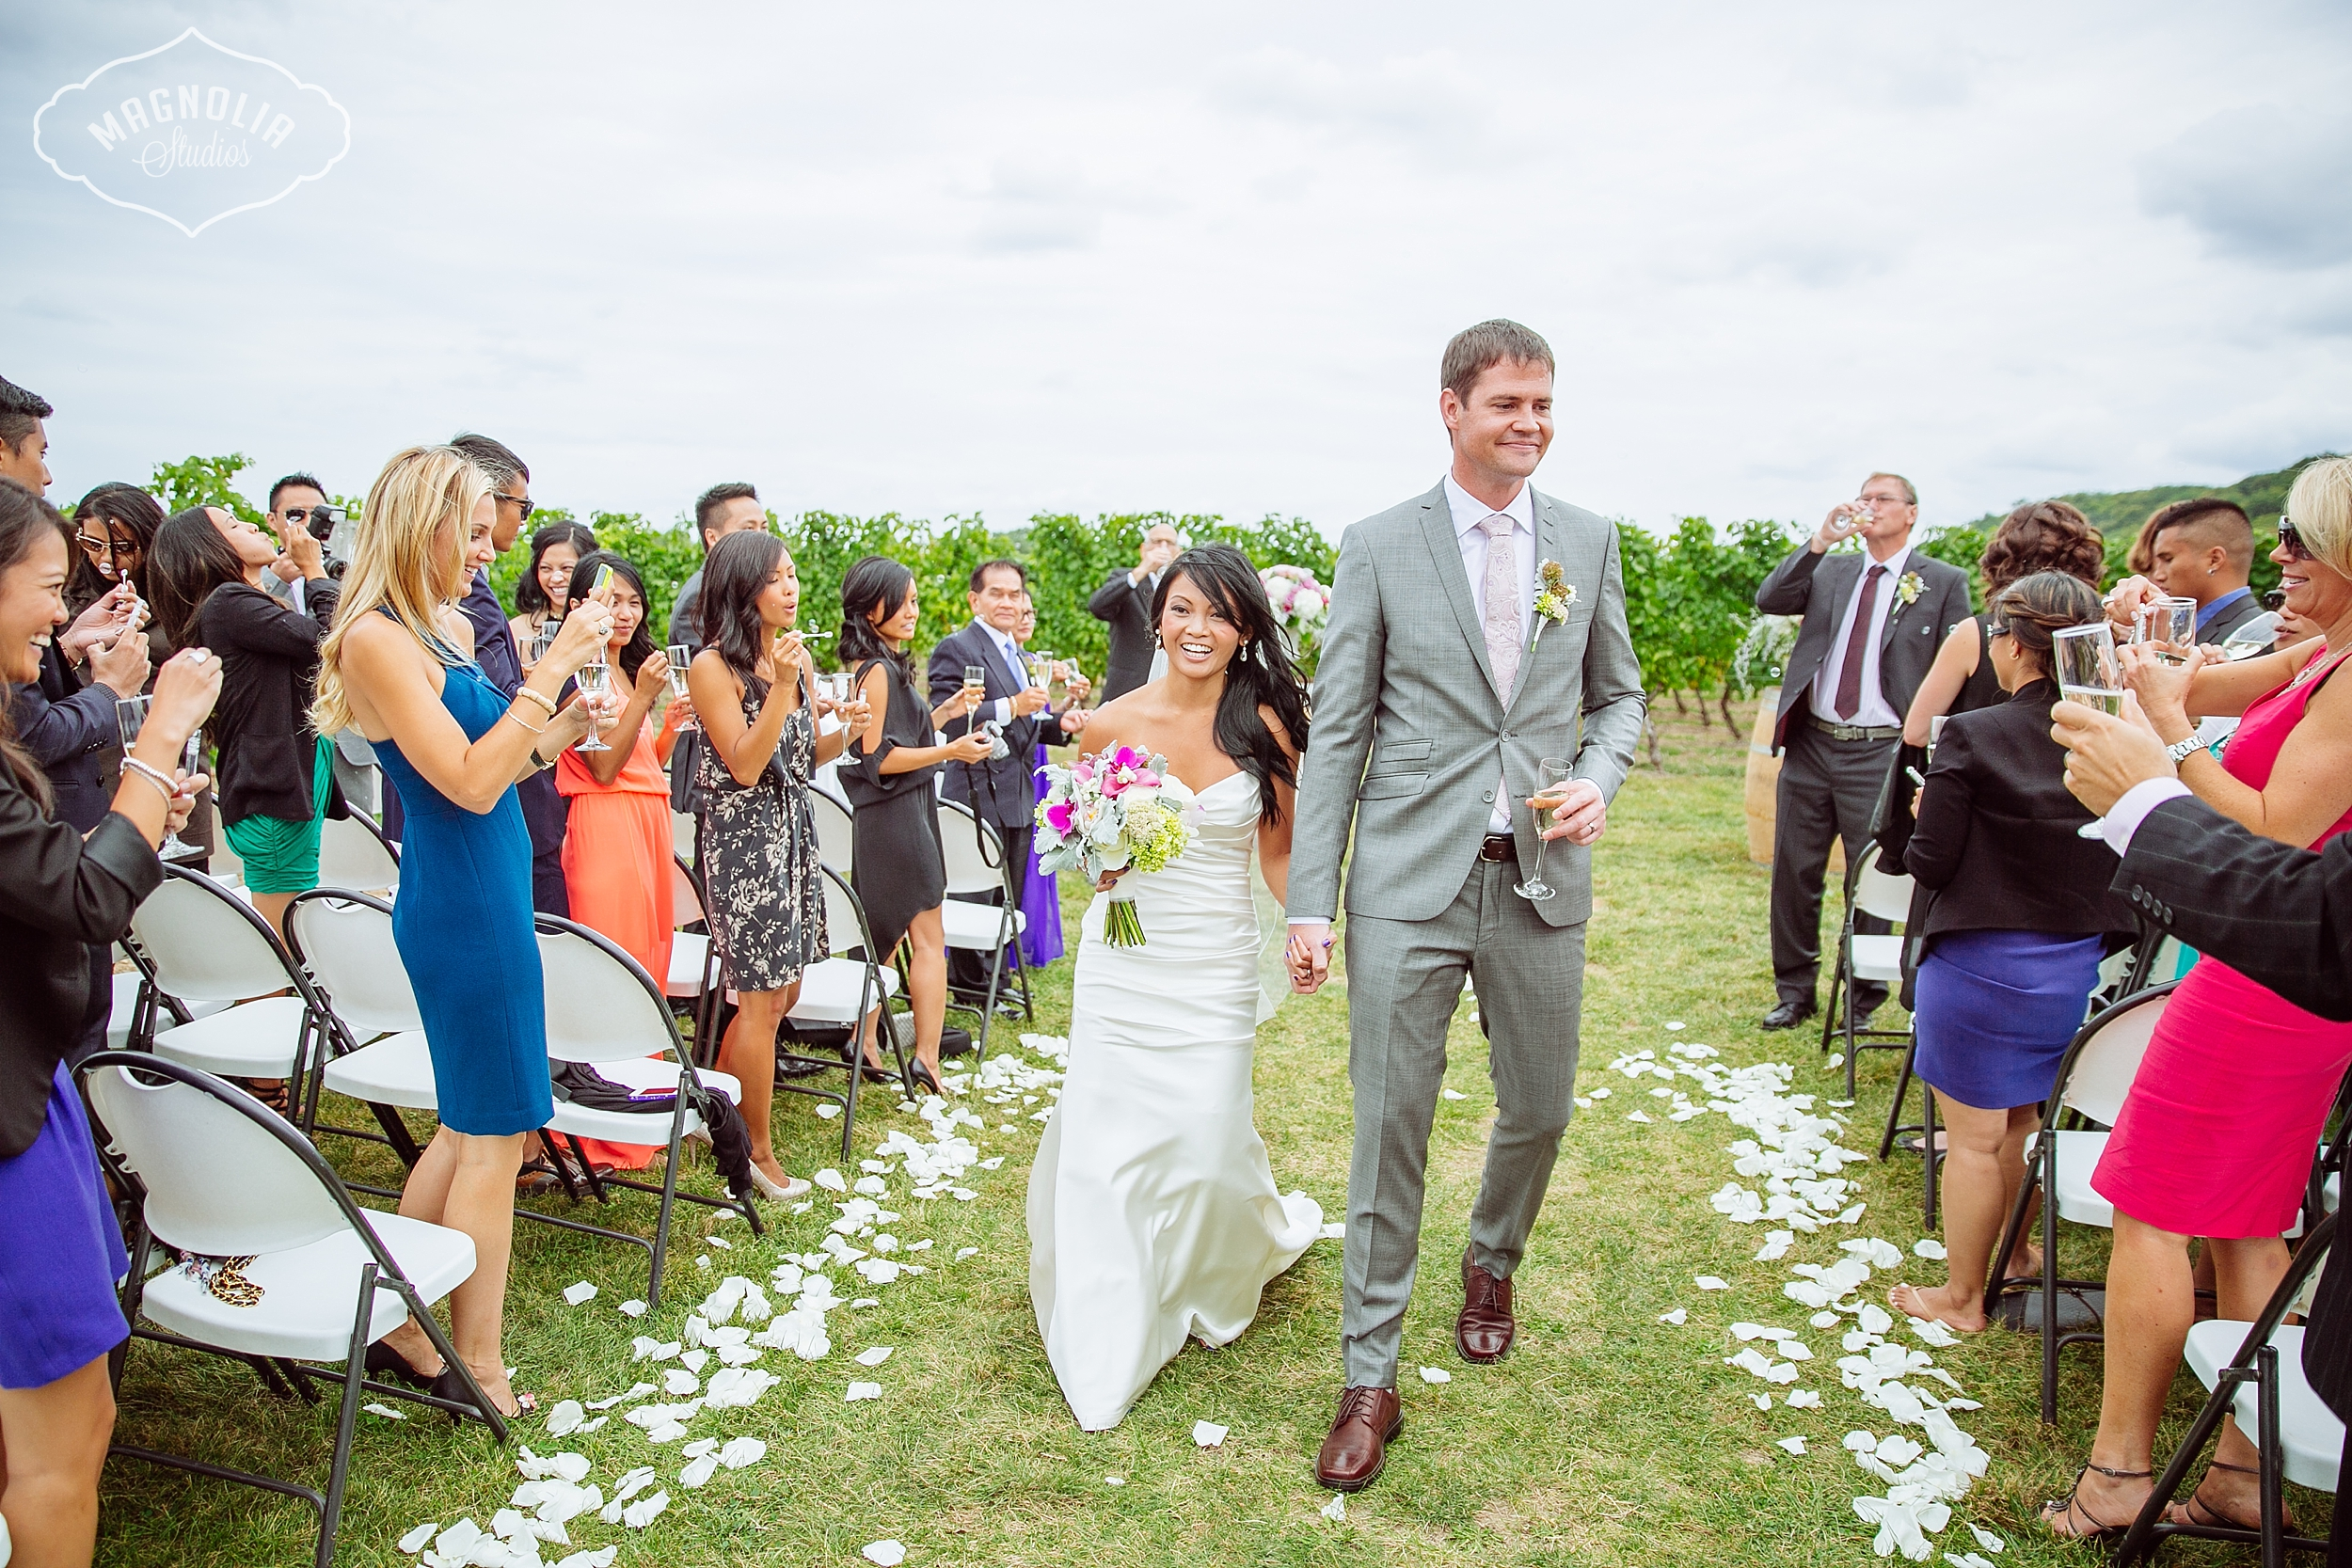 Cavesprings_Winery_Wedding_NOTL-0034